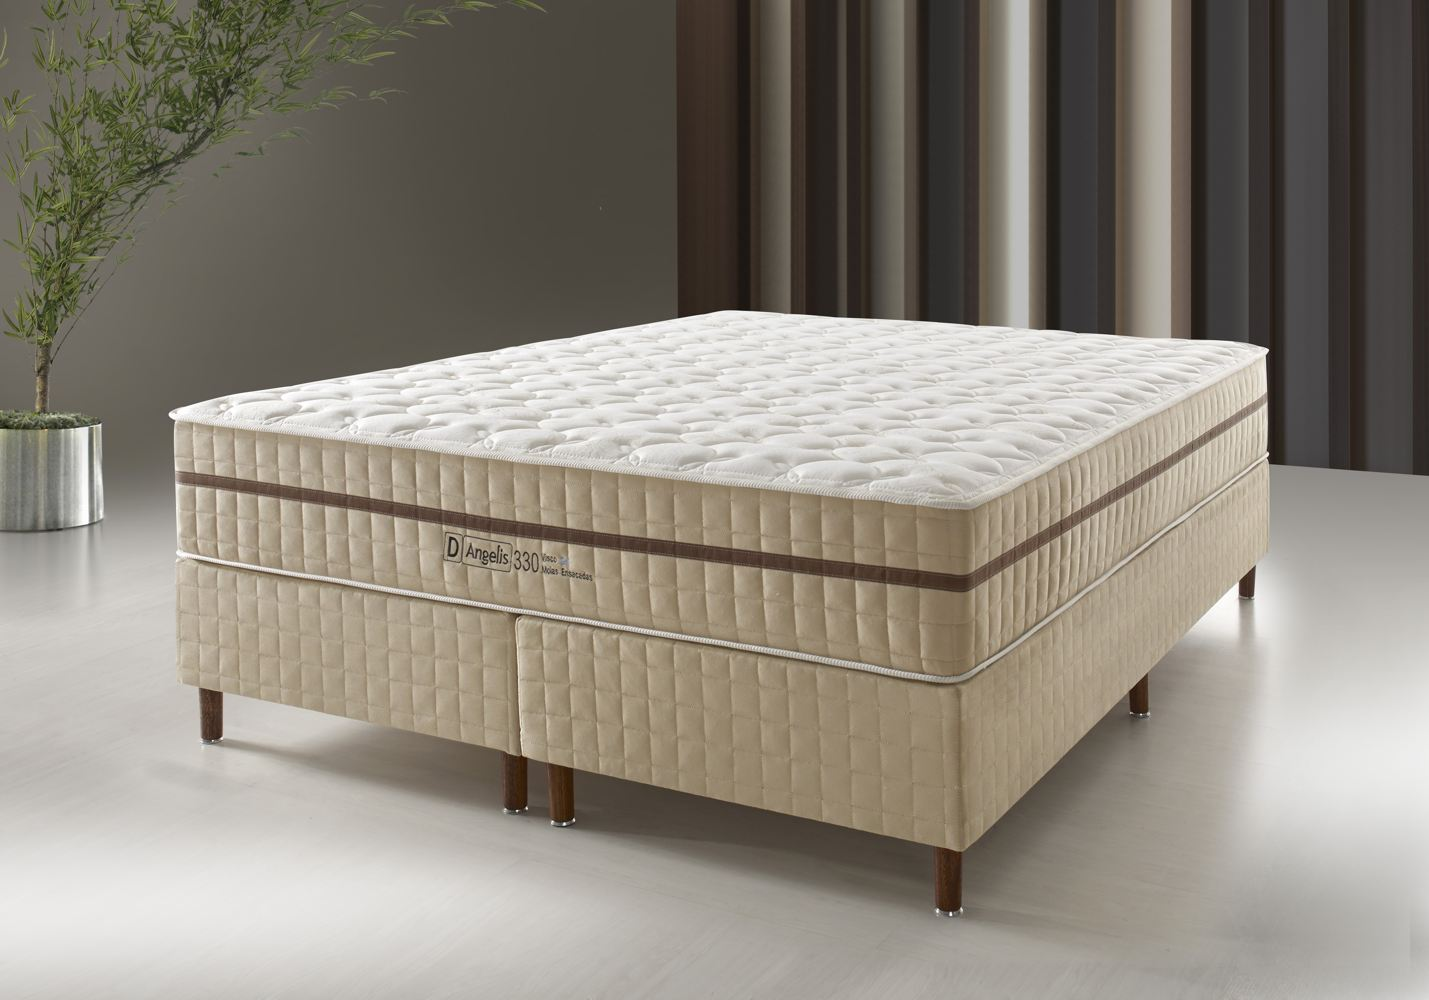 Conjunto Cama Box - DG-330 Visco Gel - Pillow In - D Angelis